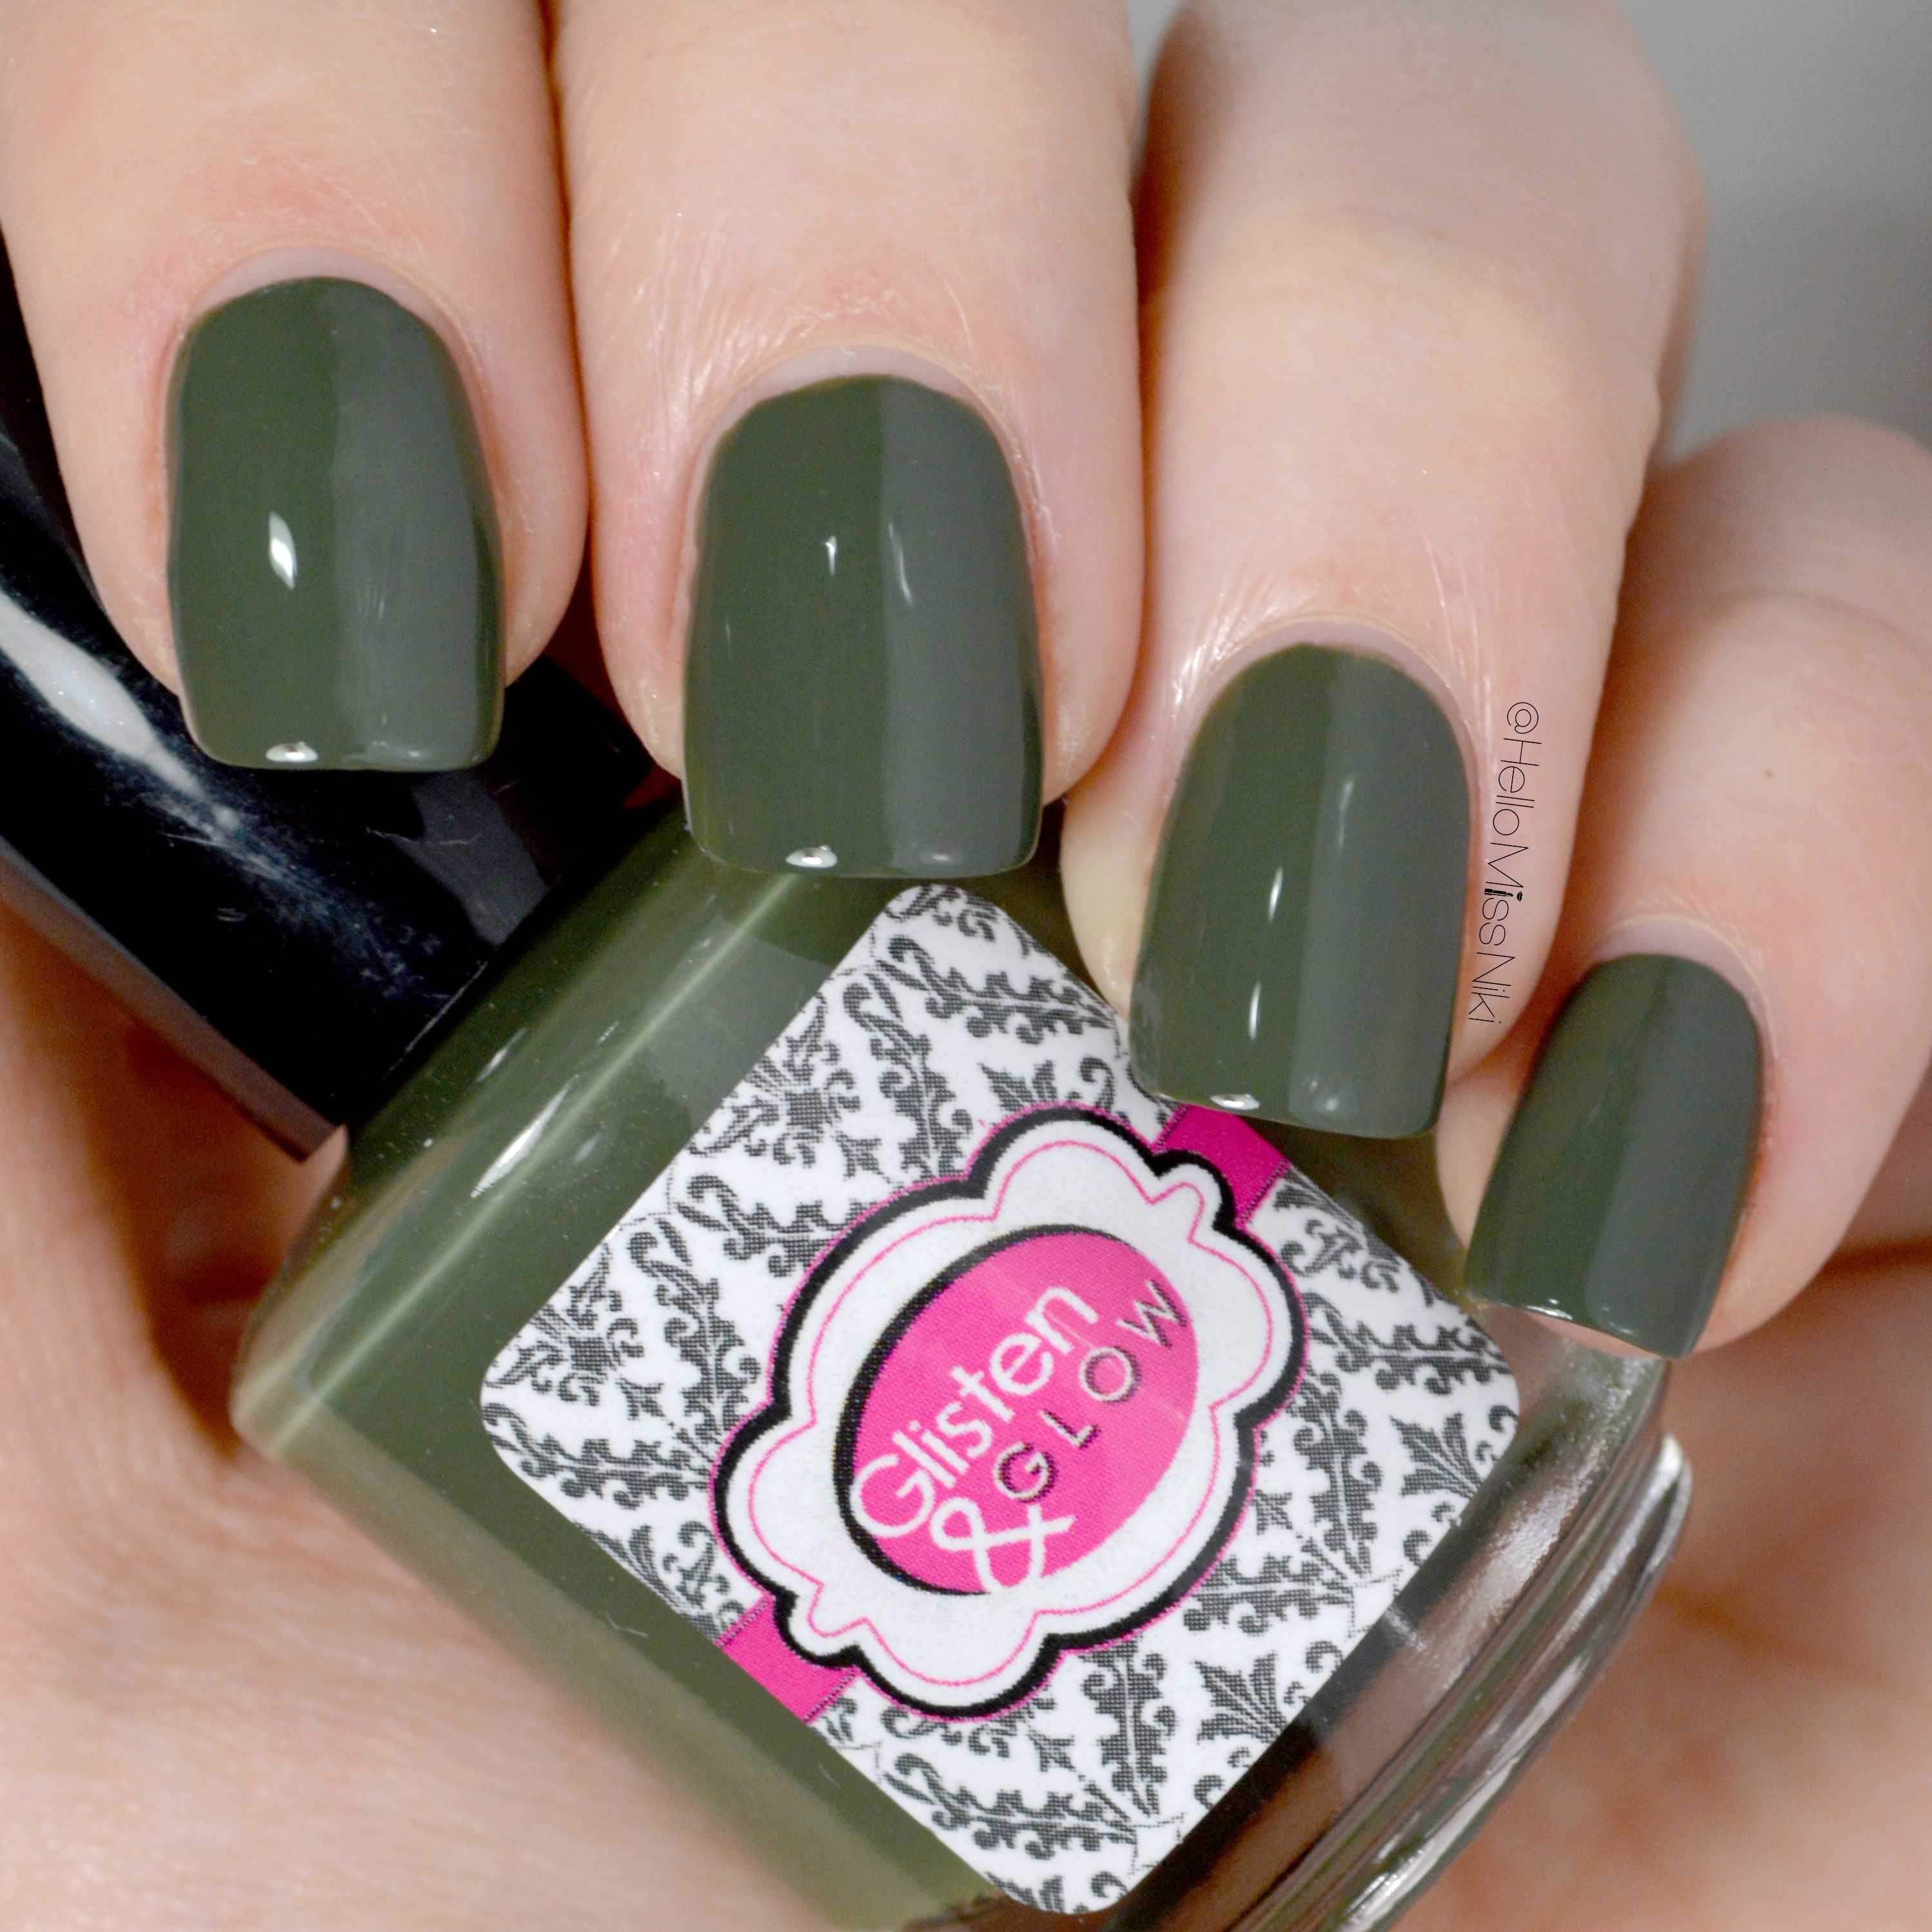 Glisten & Glow Winter 2016 Collection - Coats & Curling | Nails ...